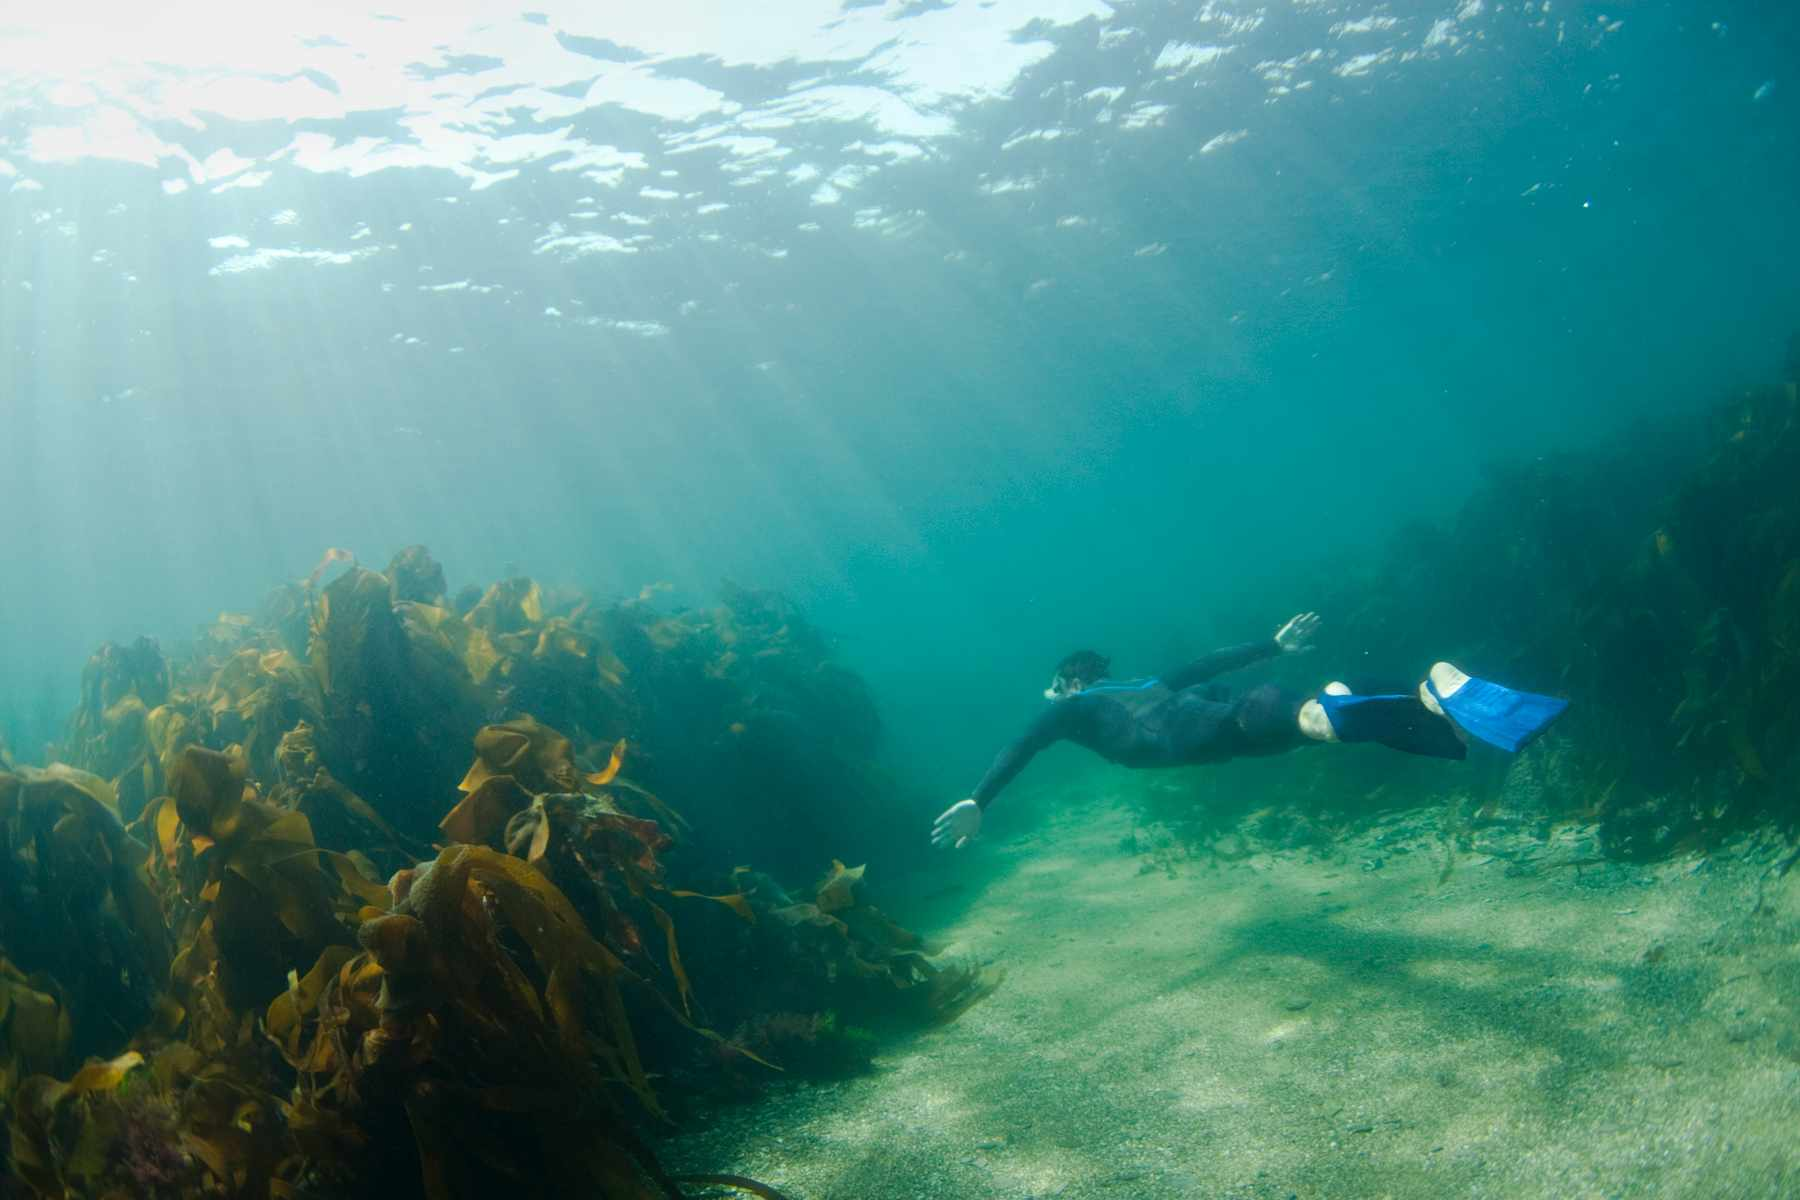 Snorkelling off the coast of Cornwall in the UK. © Matt Stansfield/Getty